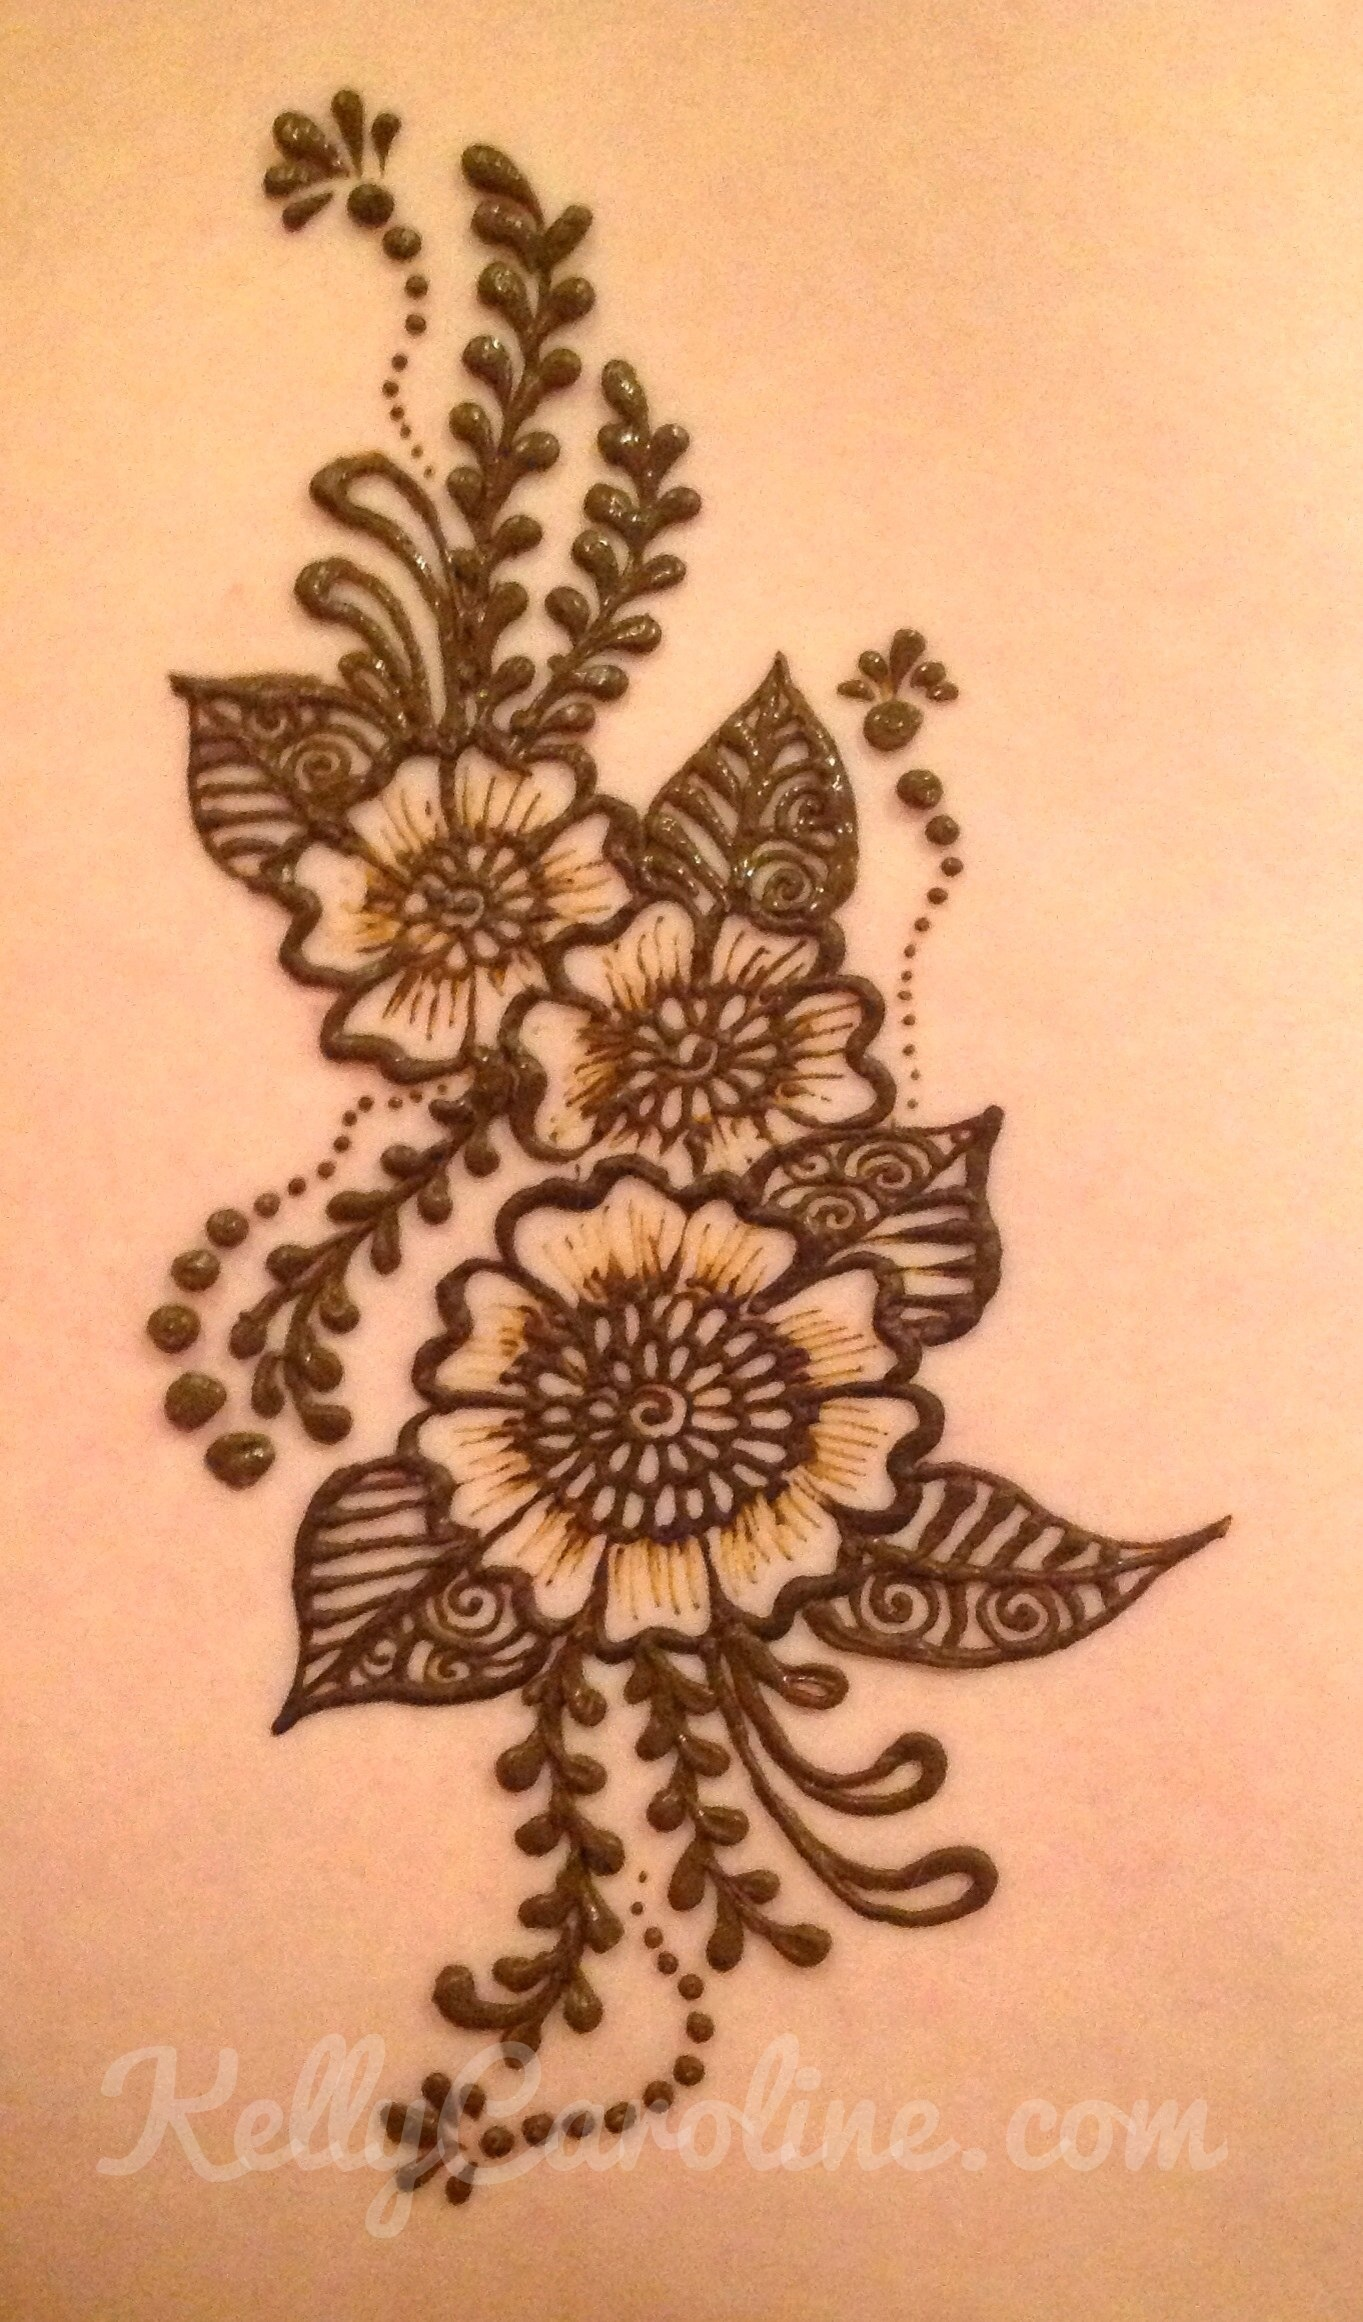 Henna Flower Designs: Michigan Henna Tattoo Artist Kelly Caroline